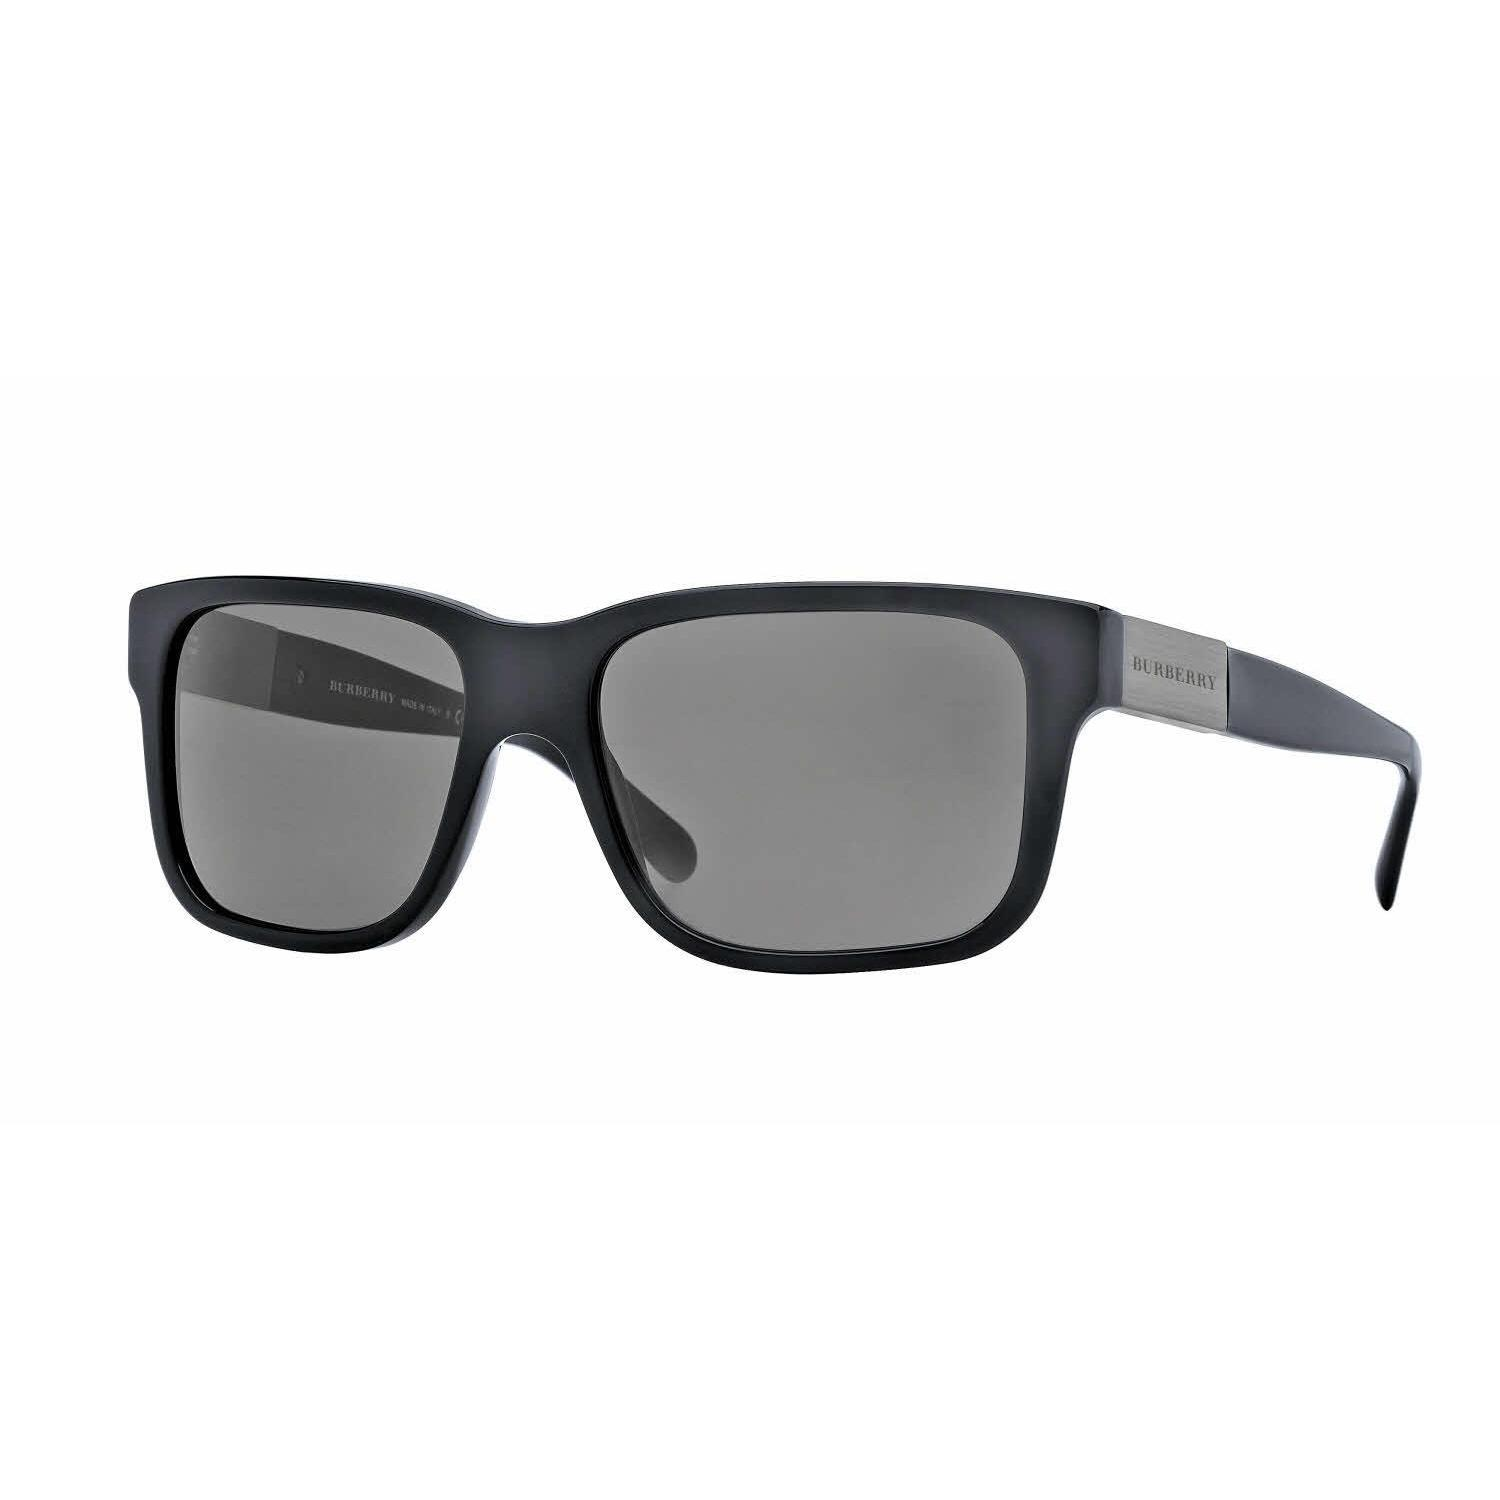 b2535e3dde6c Shop Burberry Mens BE4170 300187 Black Plastic Square Sunglasses - Free  Shipping Today - Overstock - 13517174